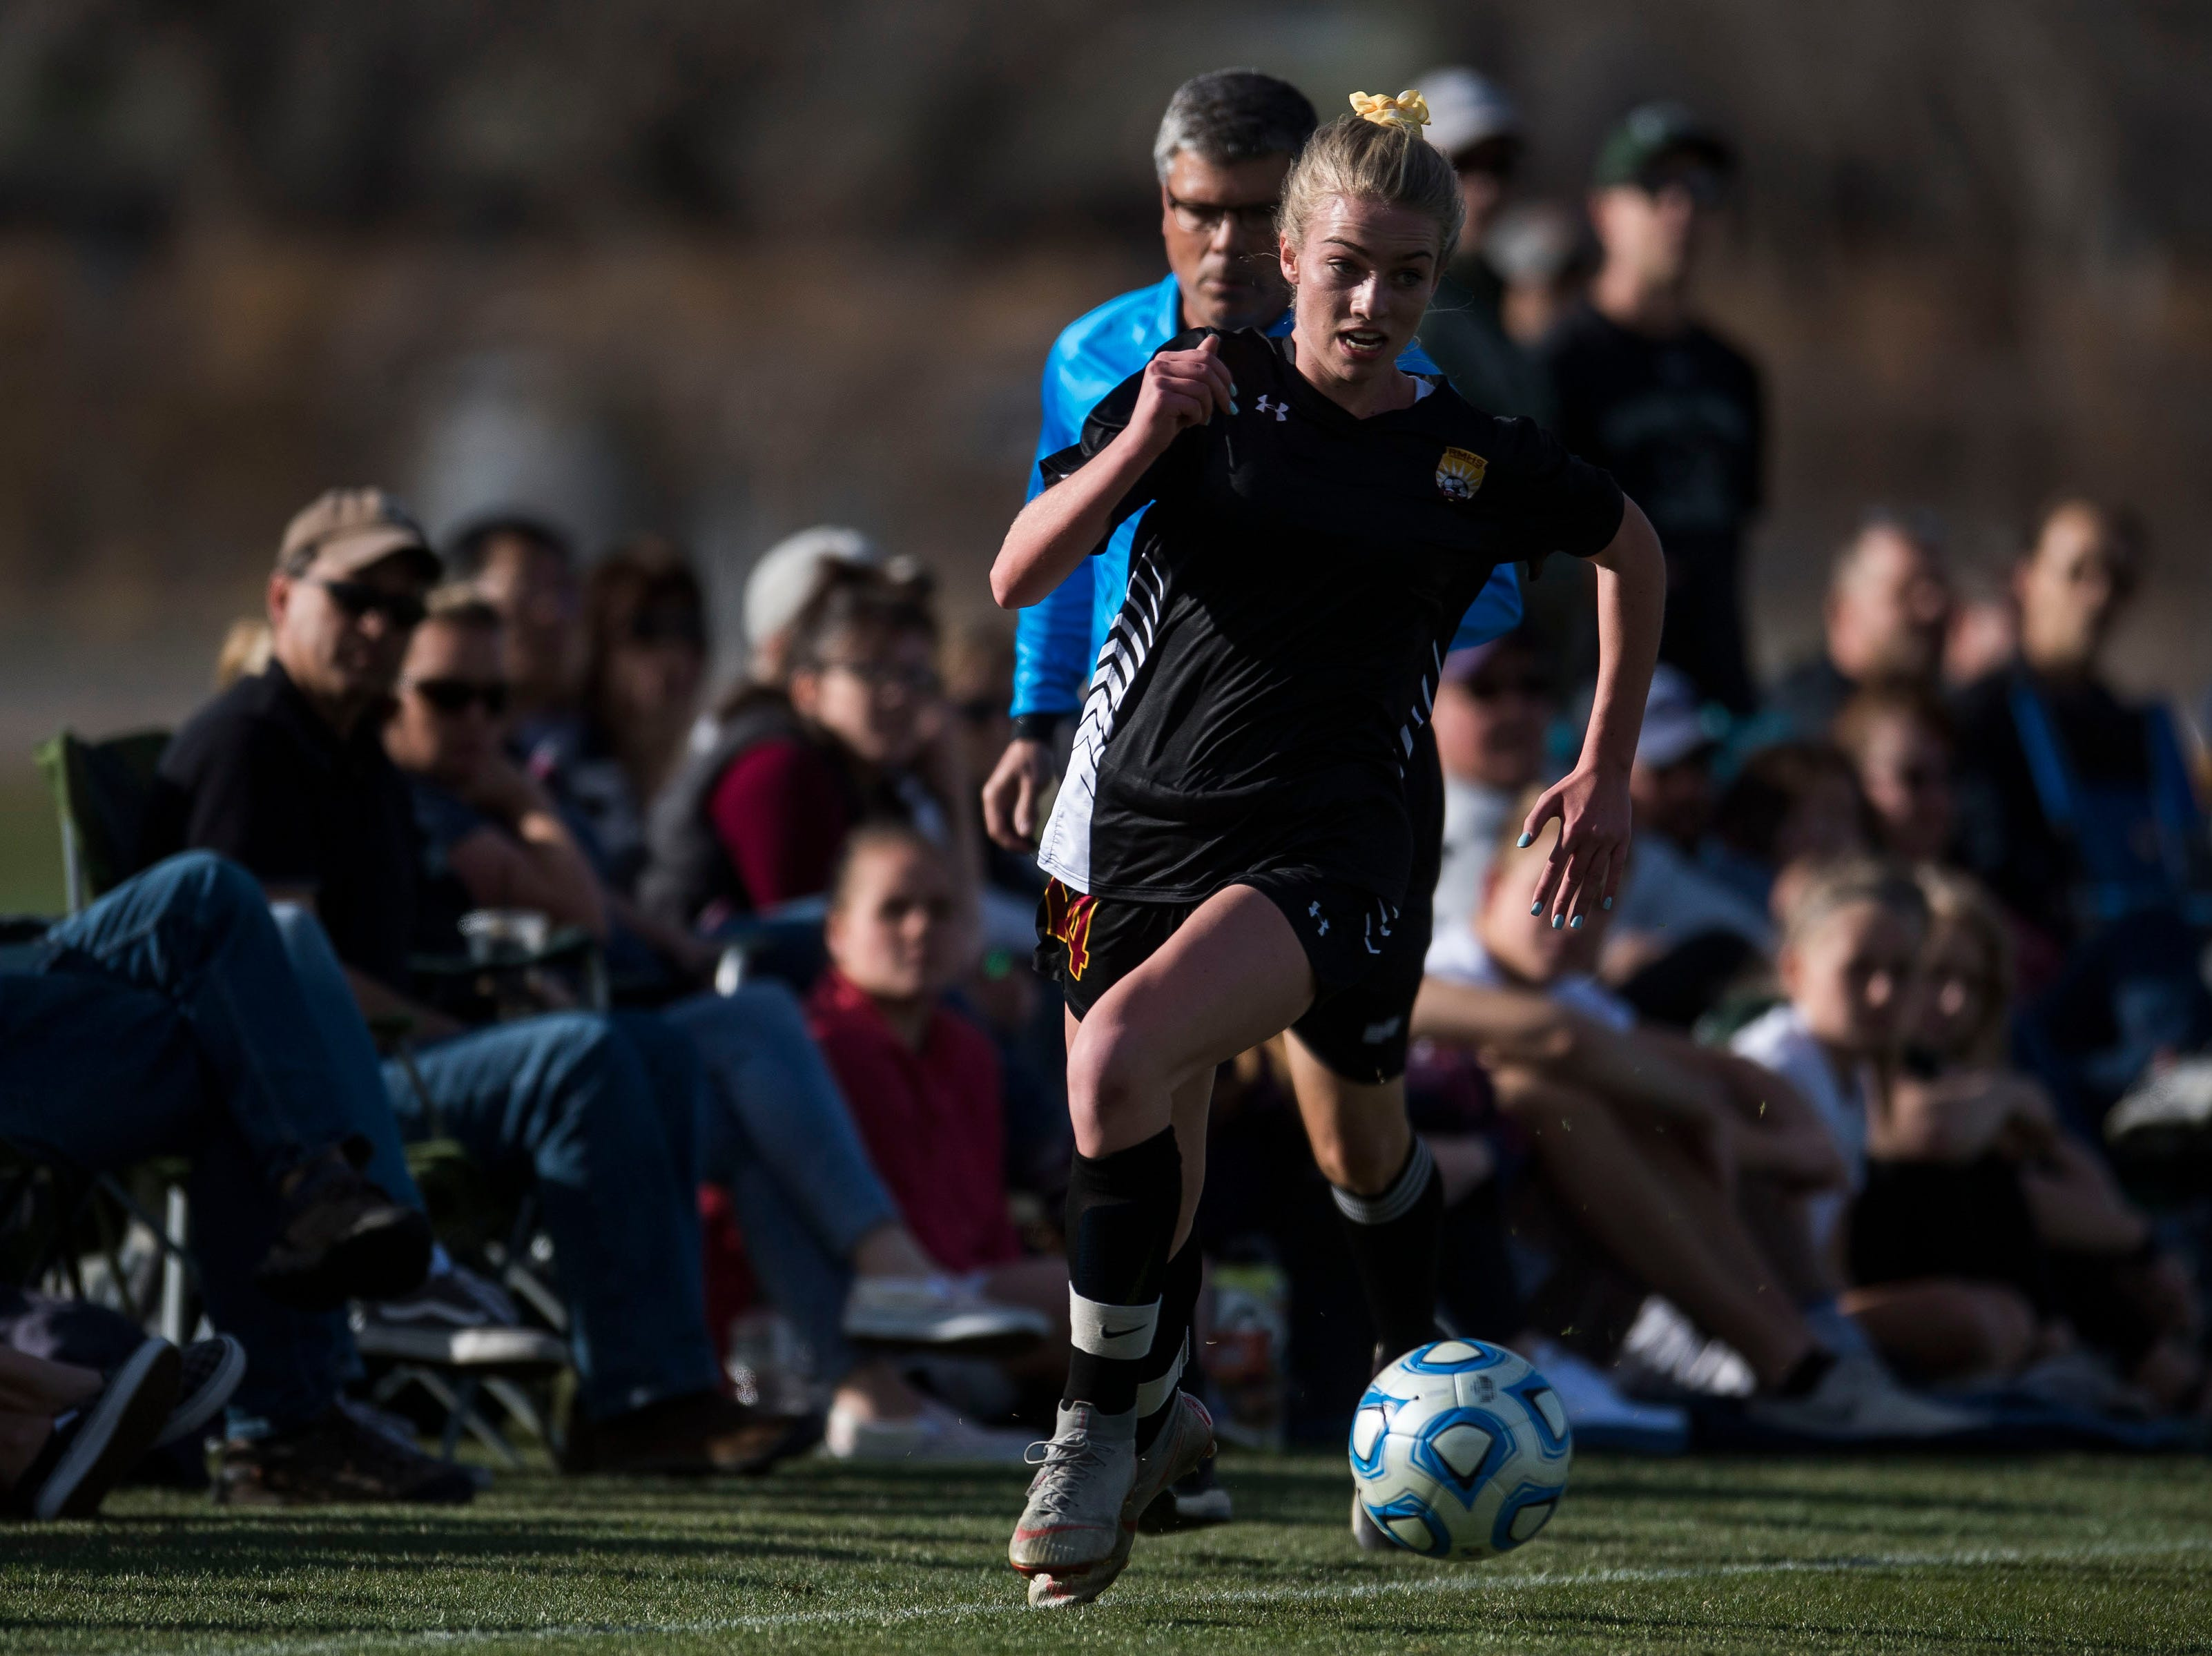 Rocky Mountain High School sophomore Mya Johnson (14) runs down the sideline during a game against Fossil Ridge High School on Friday, April 4, 2019, at Colorado State University's soccer field in Fort Collins, Colo.